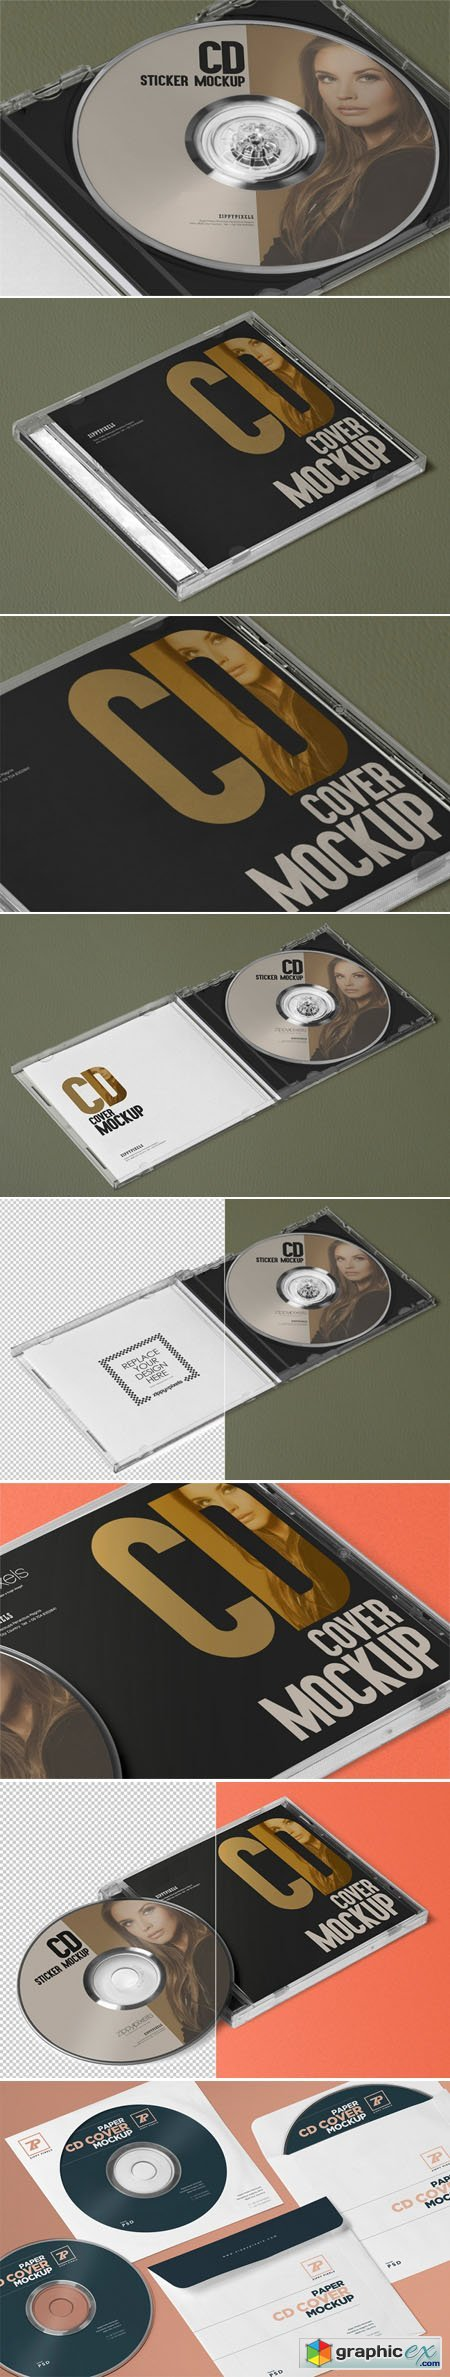 Stylish Plastic CD Case, CD Cover and Label Sticker Mockups Generator